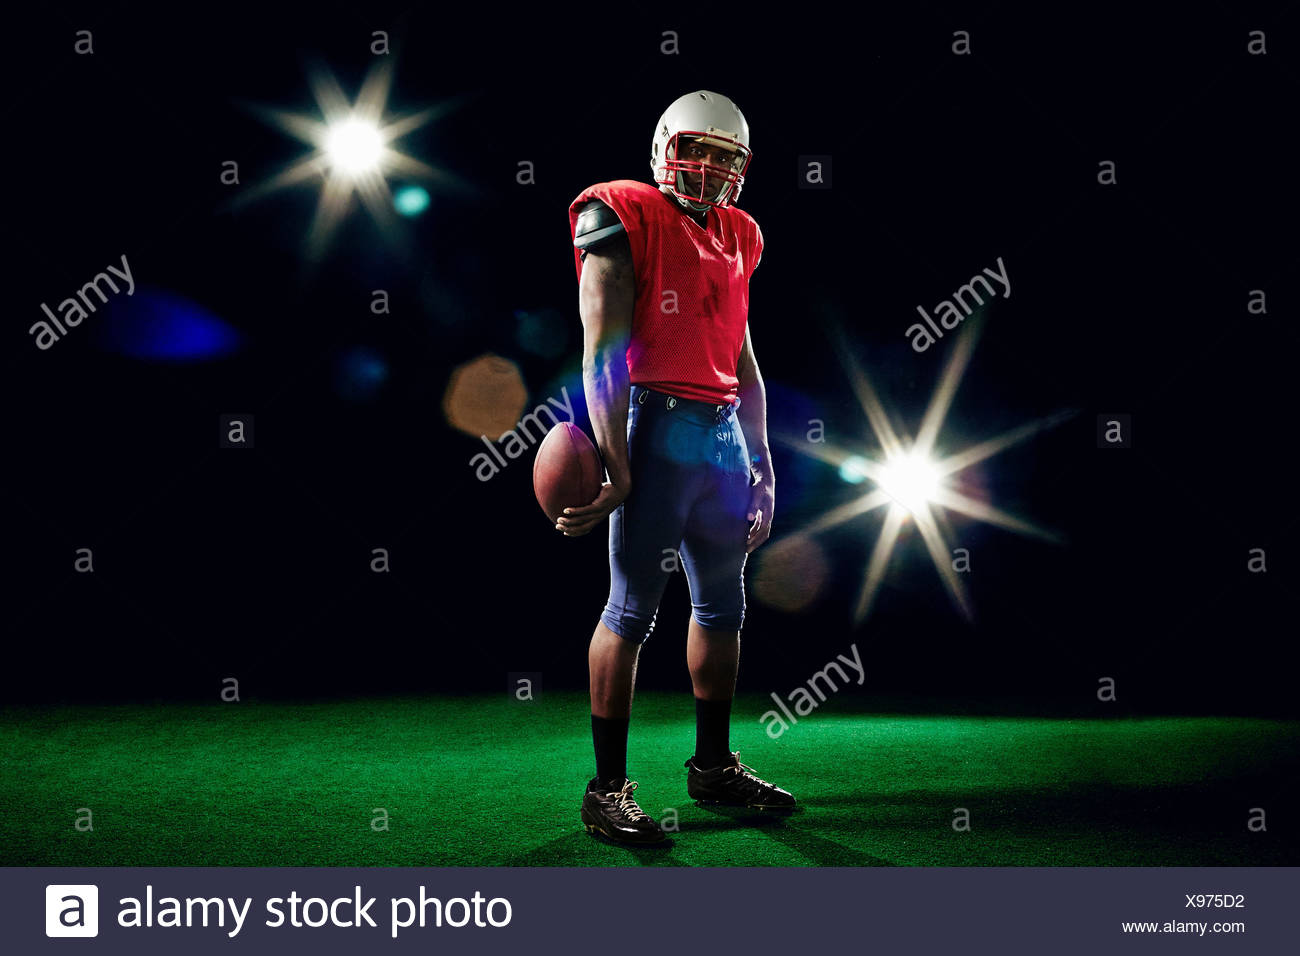 American football player with ball - Stock Image